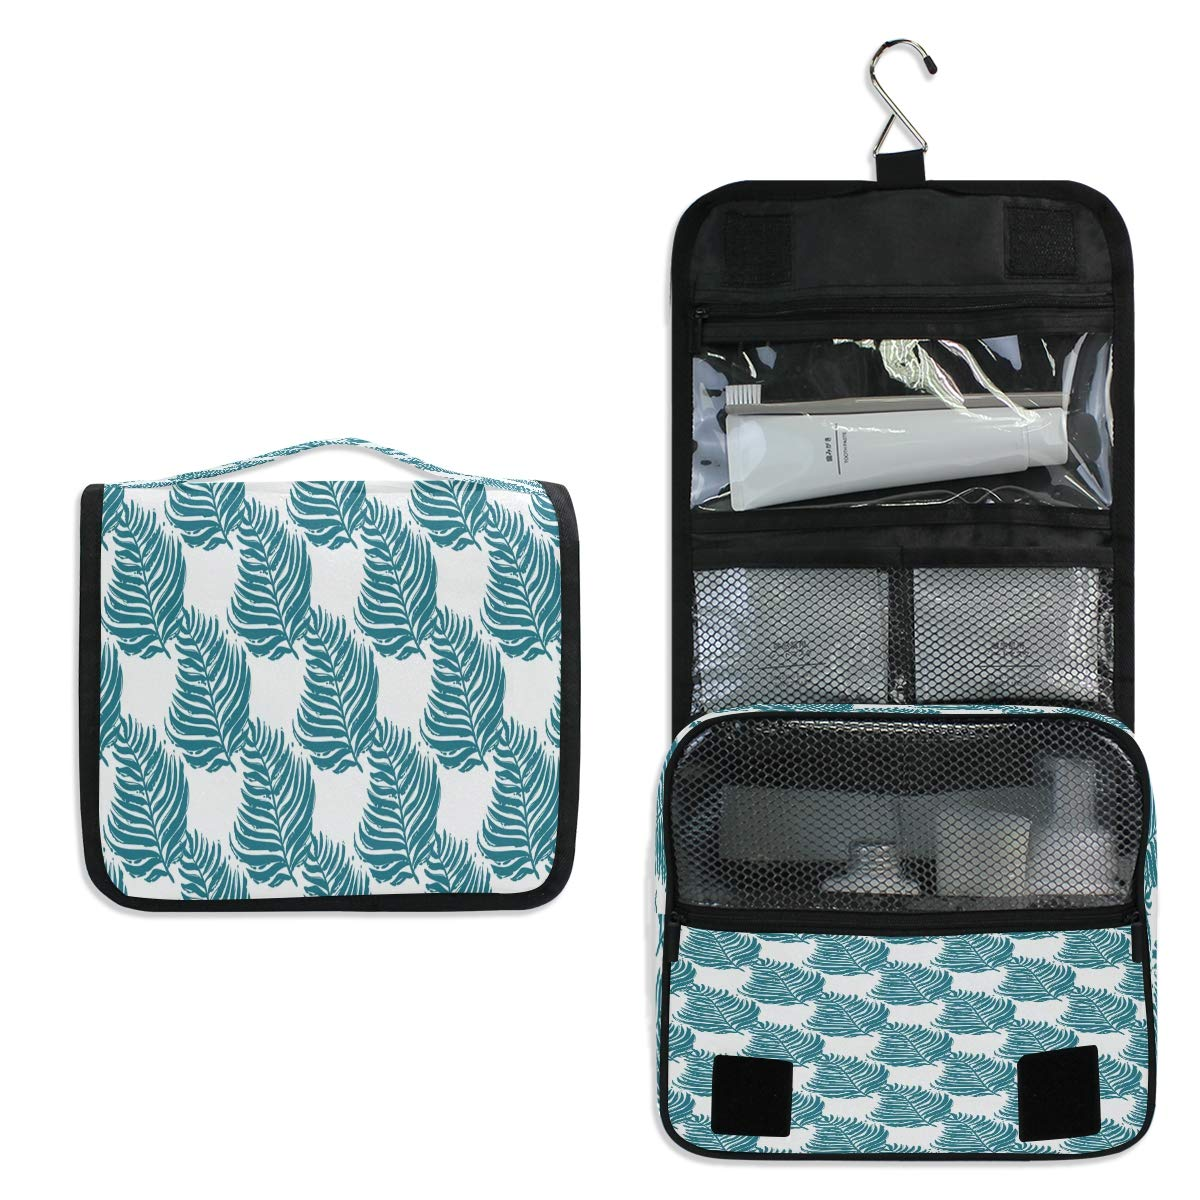 Hanging Toiletry Bag, Summer Seamless Palm Waterproof Quilted Wash Gargle Bag Portable Travel Bathroom Shower Bags Deluxe Large Makeup Brush Case Capacity Pouch for Men and Woman